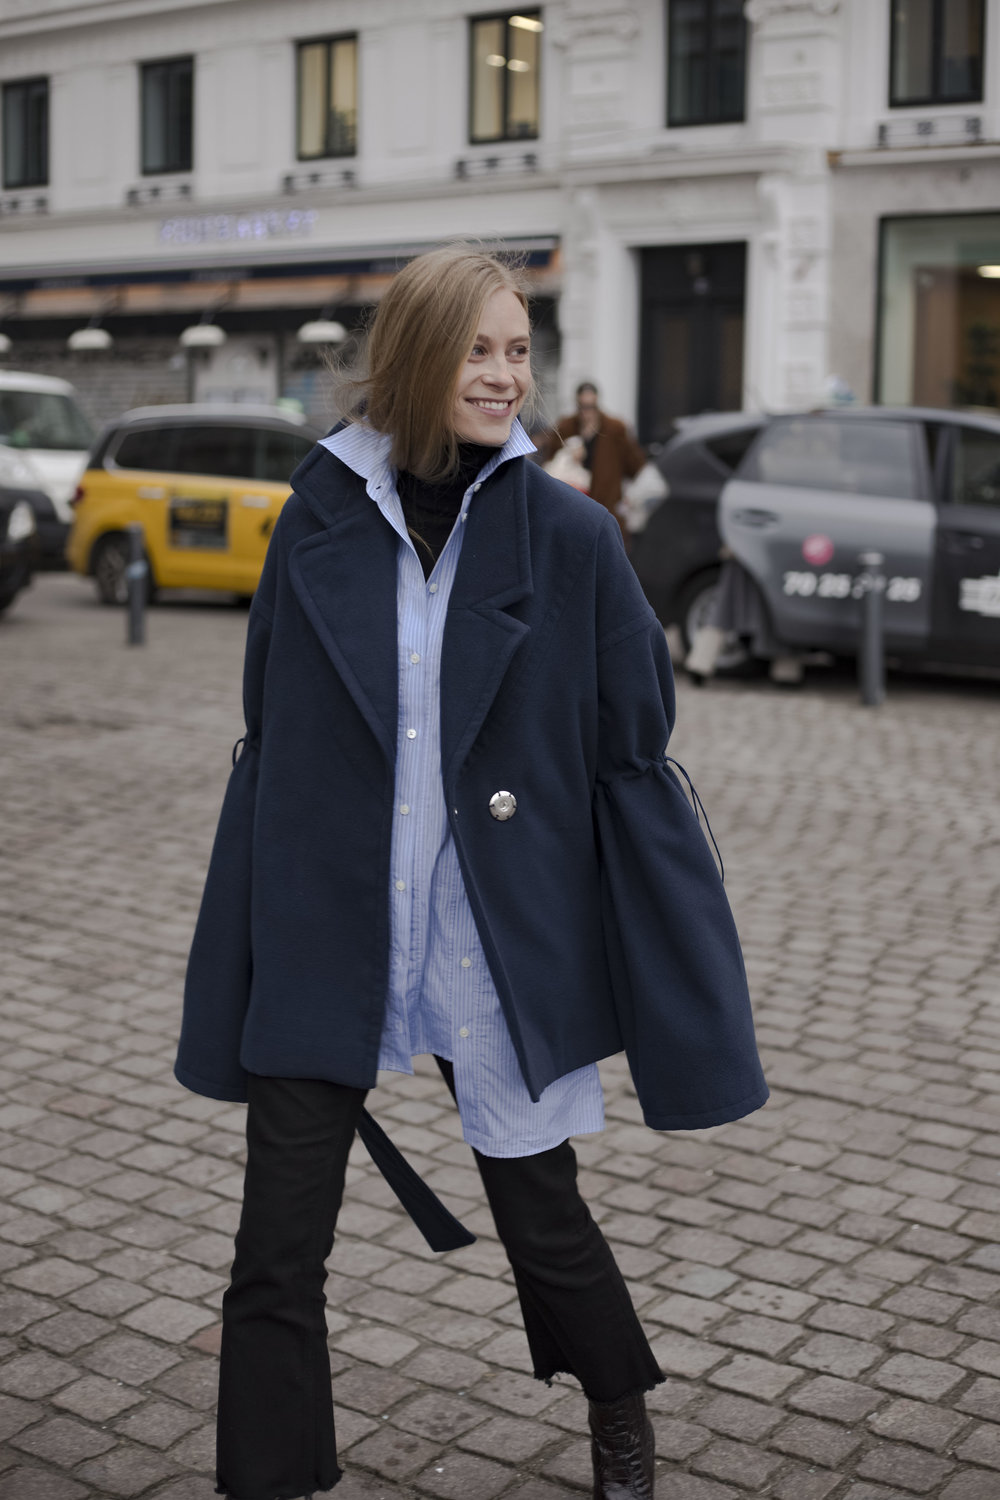 tine-andreaa-thestreetland-streetstyle-scandinavia-copenhagen-fashion-week-aw18-Street-Style-Fashion-Photography